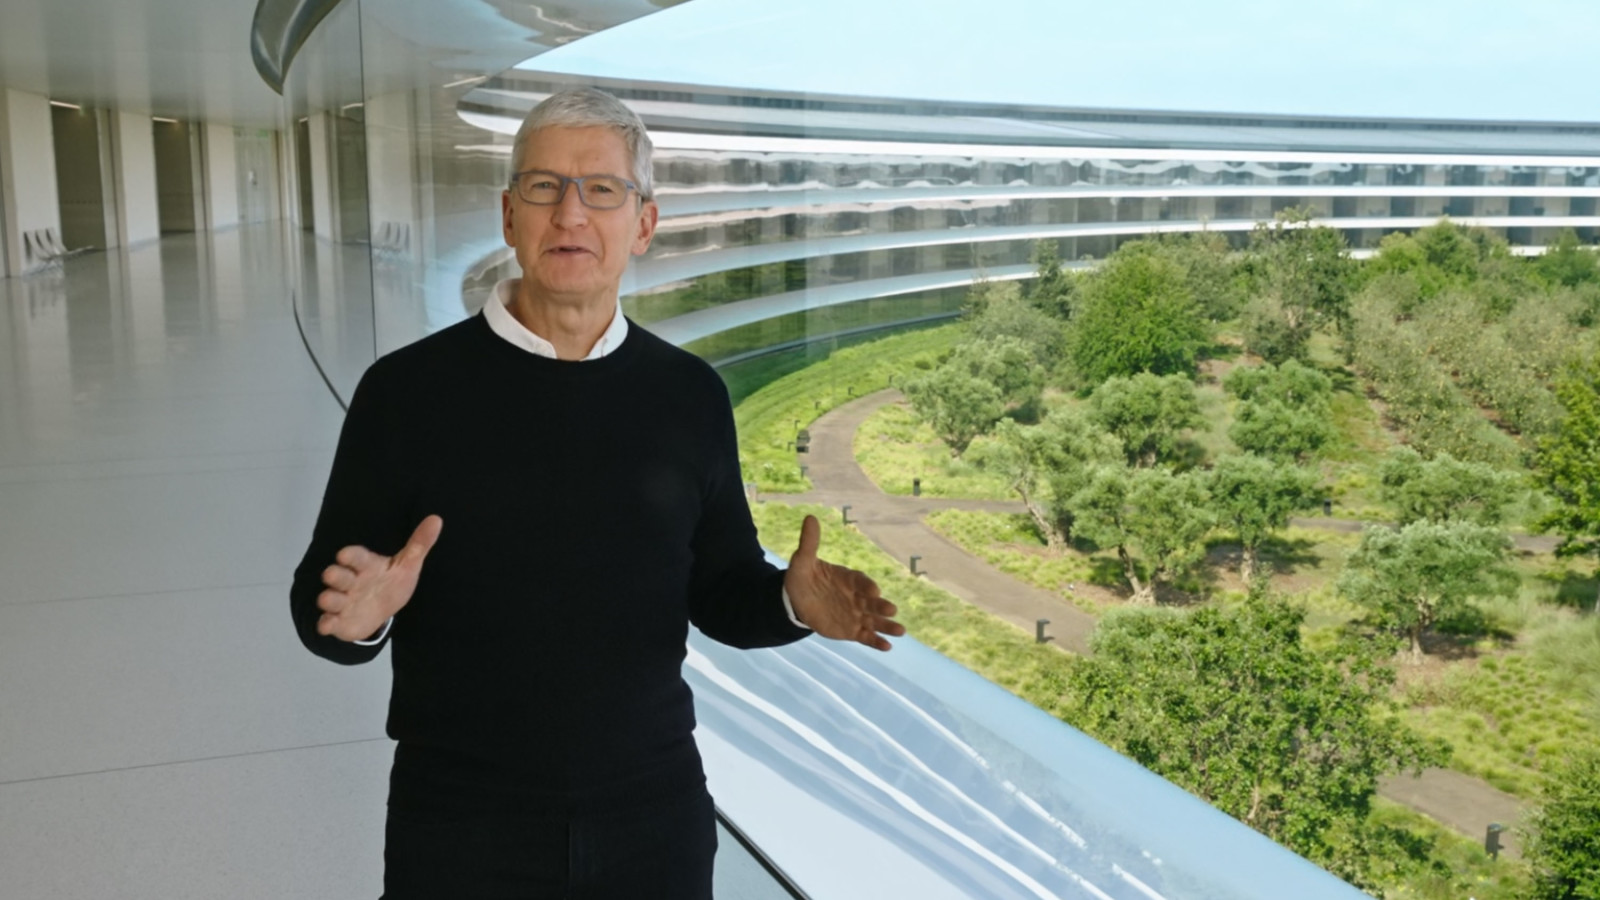 Apple Keynote 2020, Tim Cook